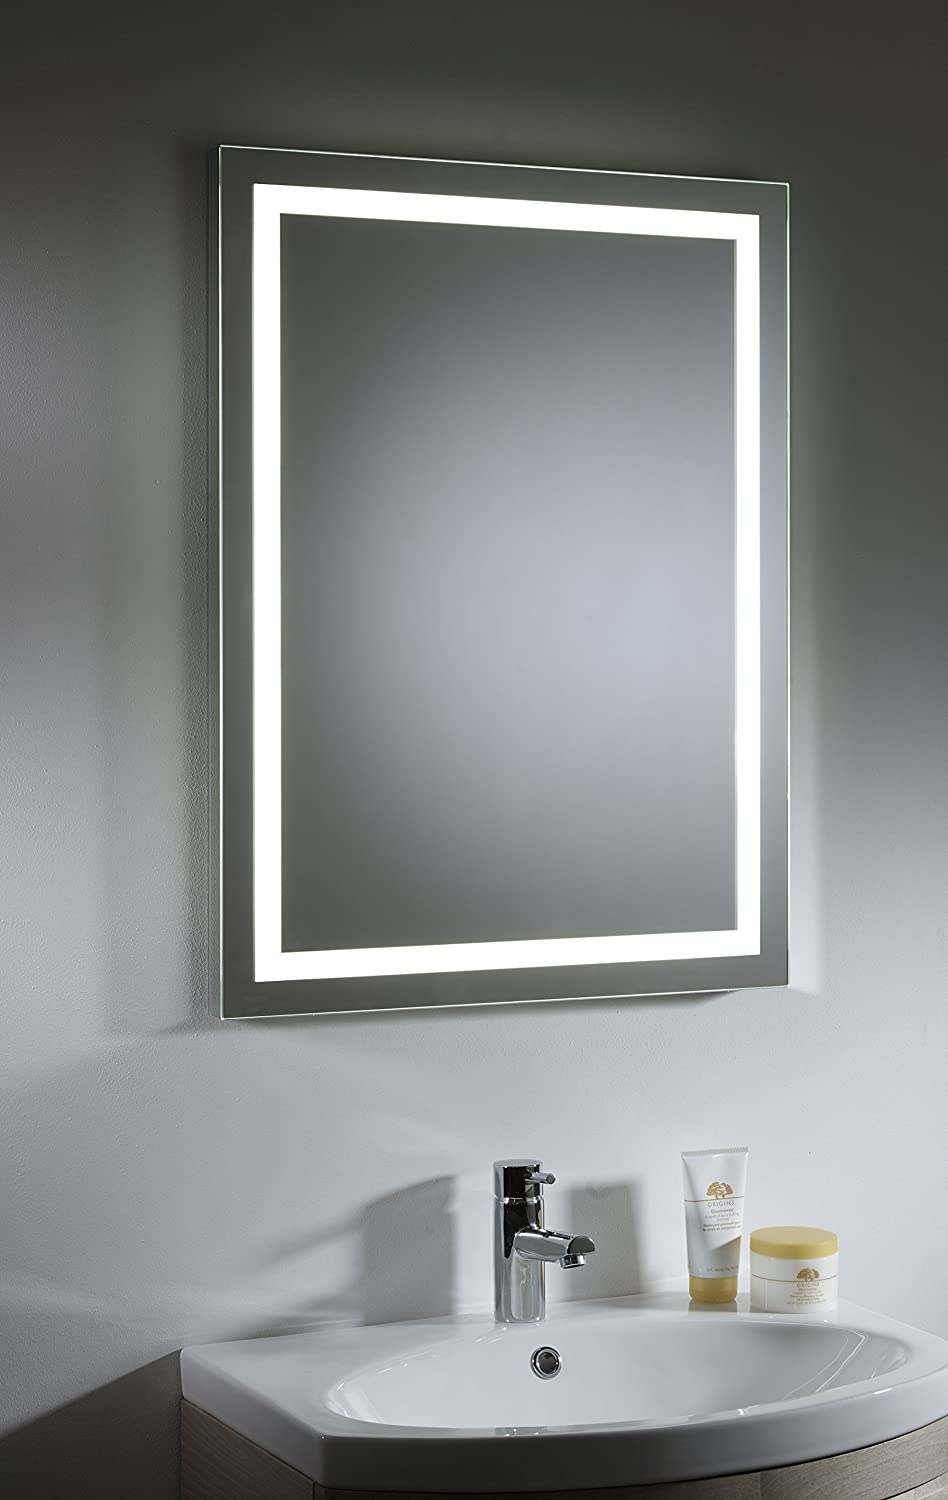 Tavistock Toro Large Illuminated LED Backlit Bathroom Mirror With Heated Demister Pad Sensor Switch 800 X 600 Mm Amazoncouk Kitchen Home